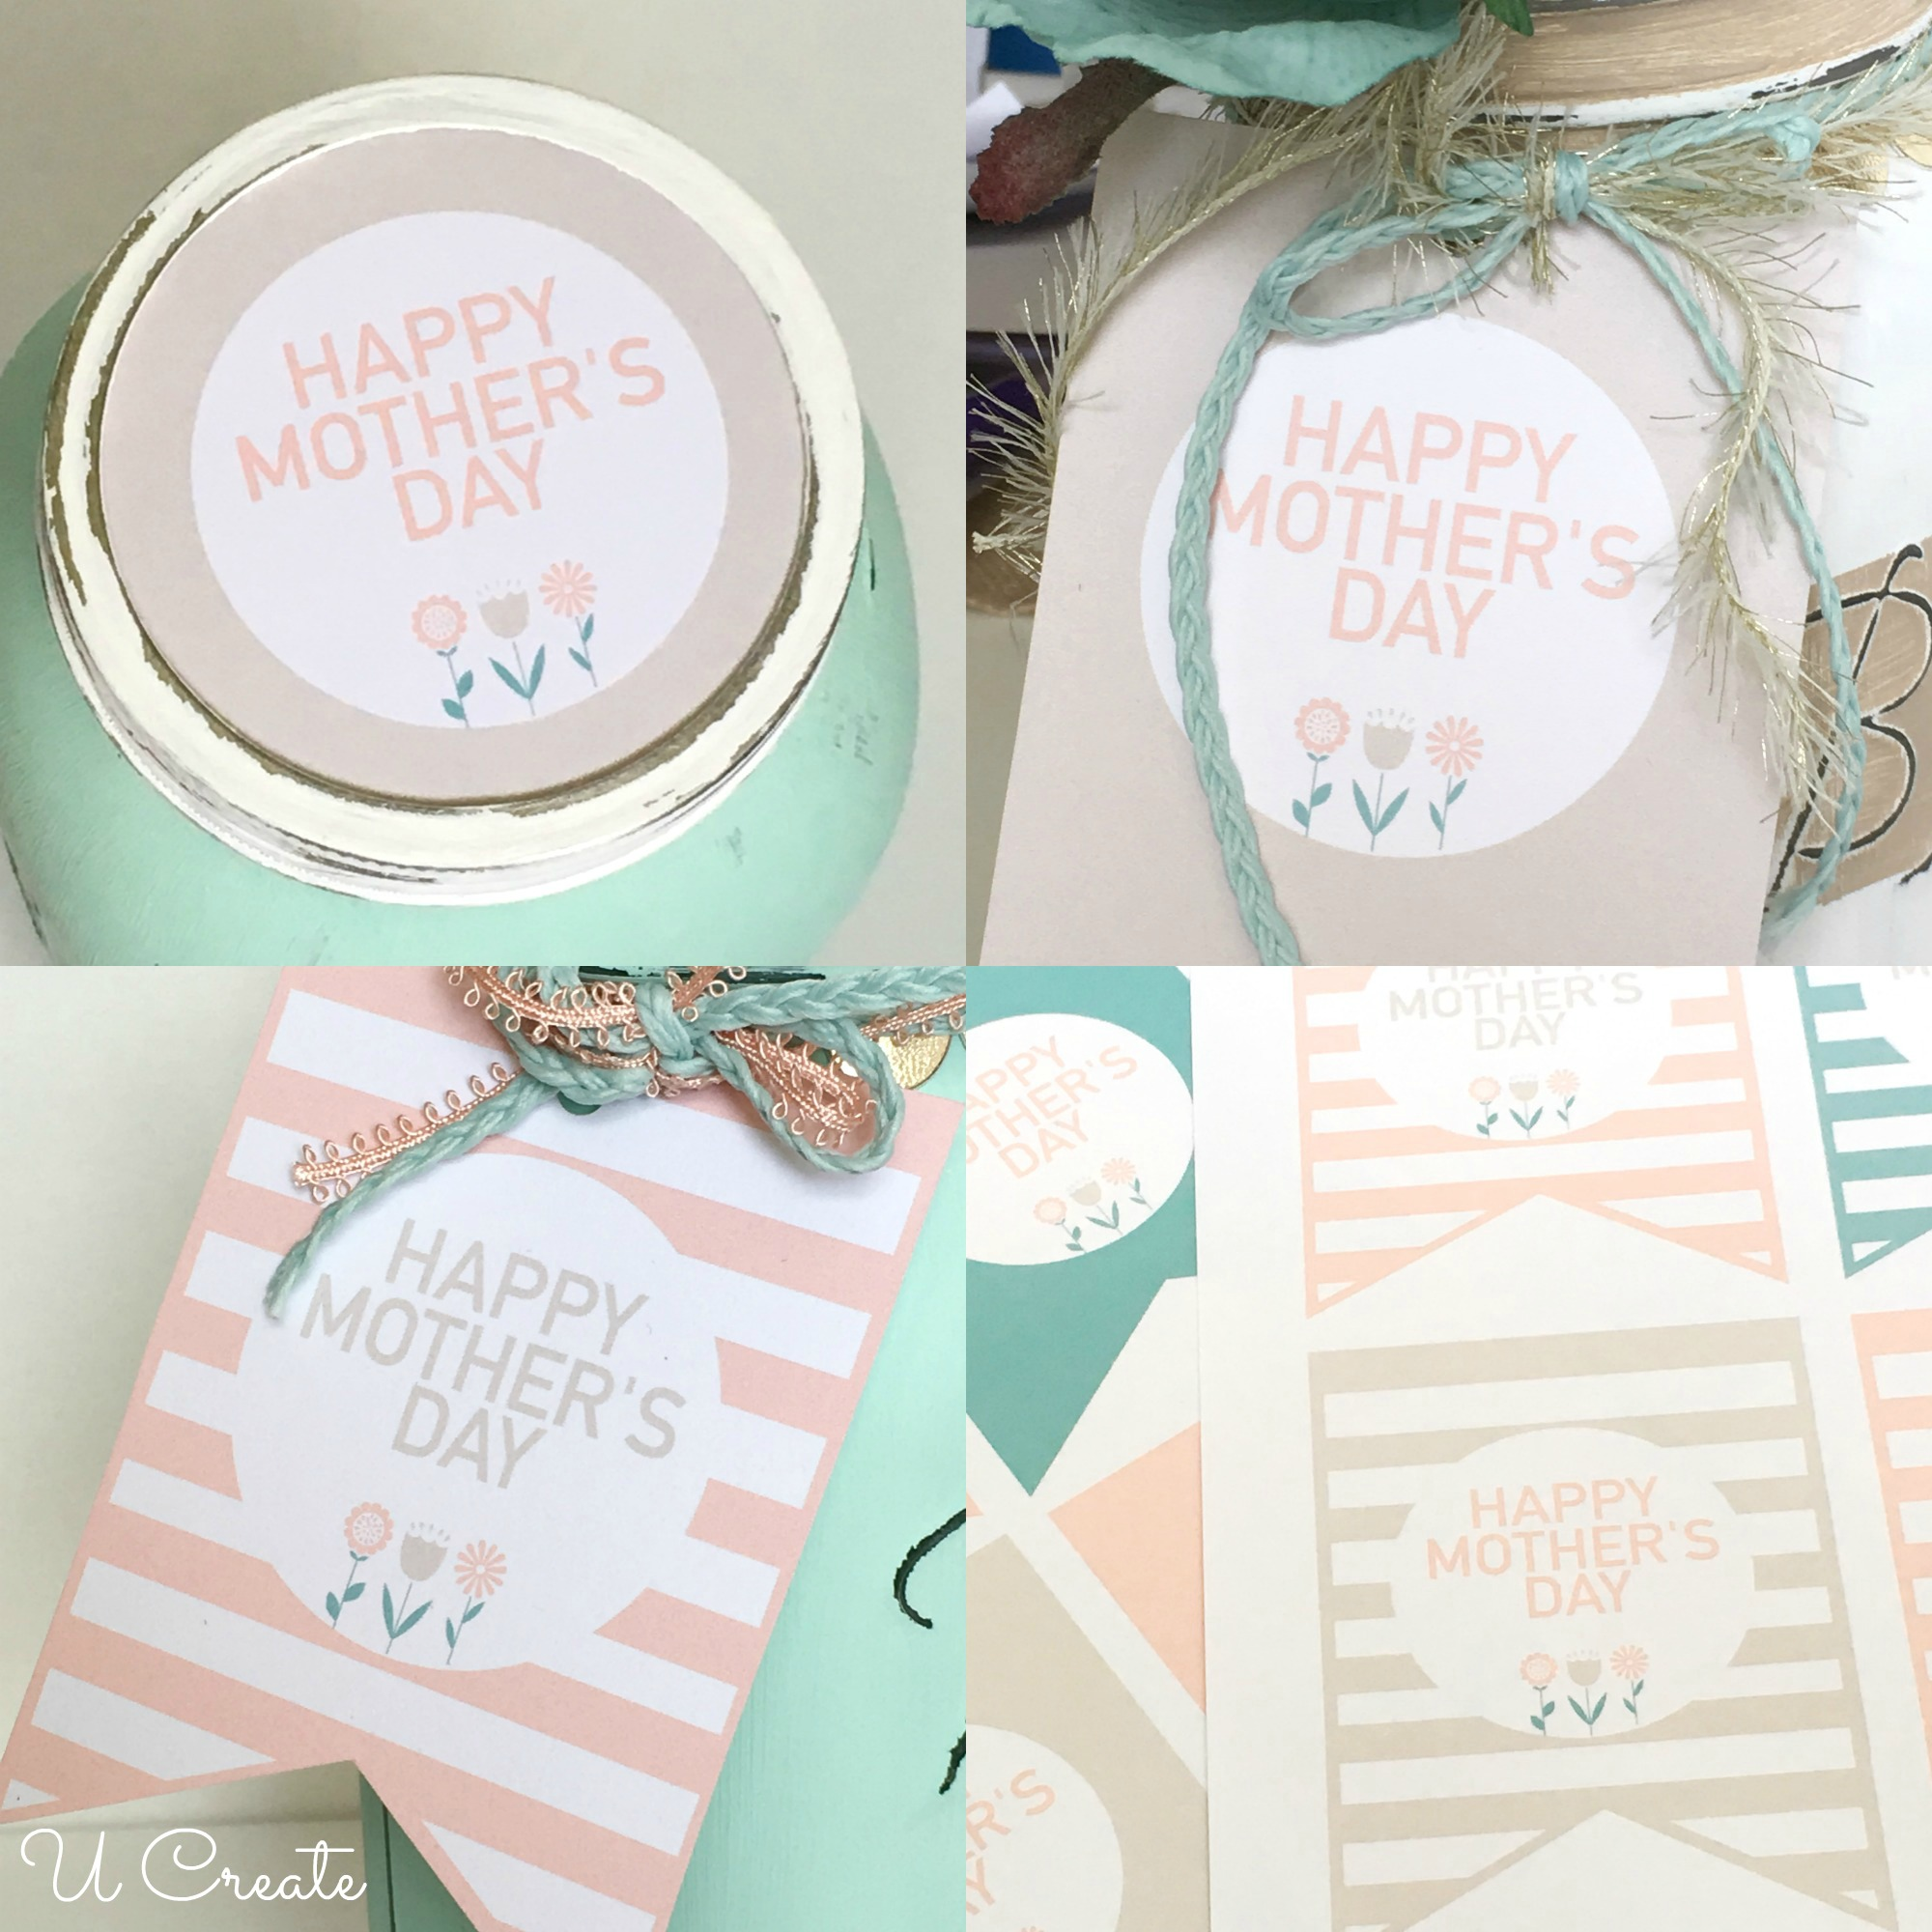 http://www.u-createcrafts.com/wp-content/uploads/2016/04/free-mothers-day-tags.jpg